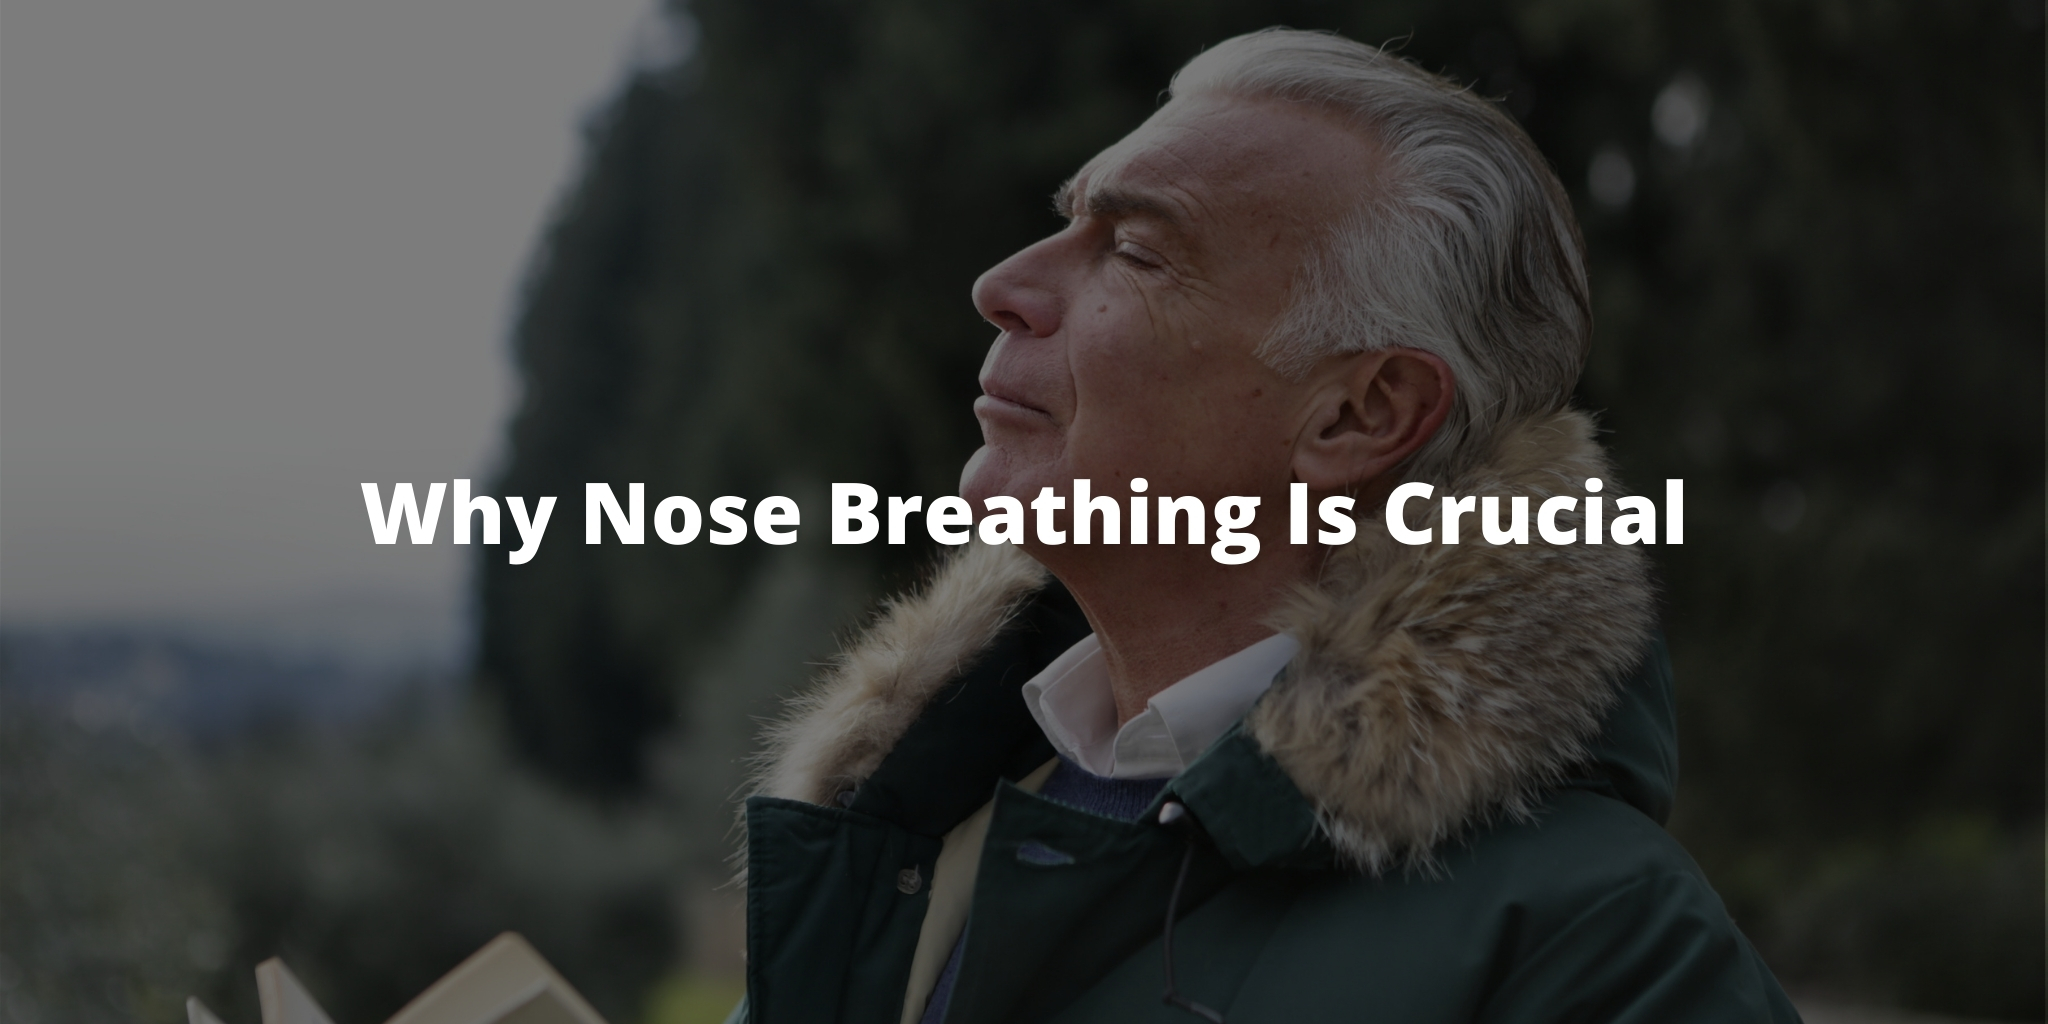 Why Nose Breathing Is Crucial